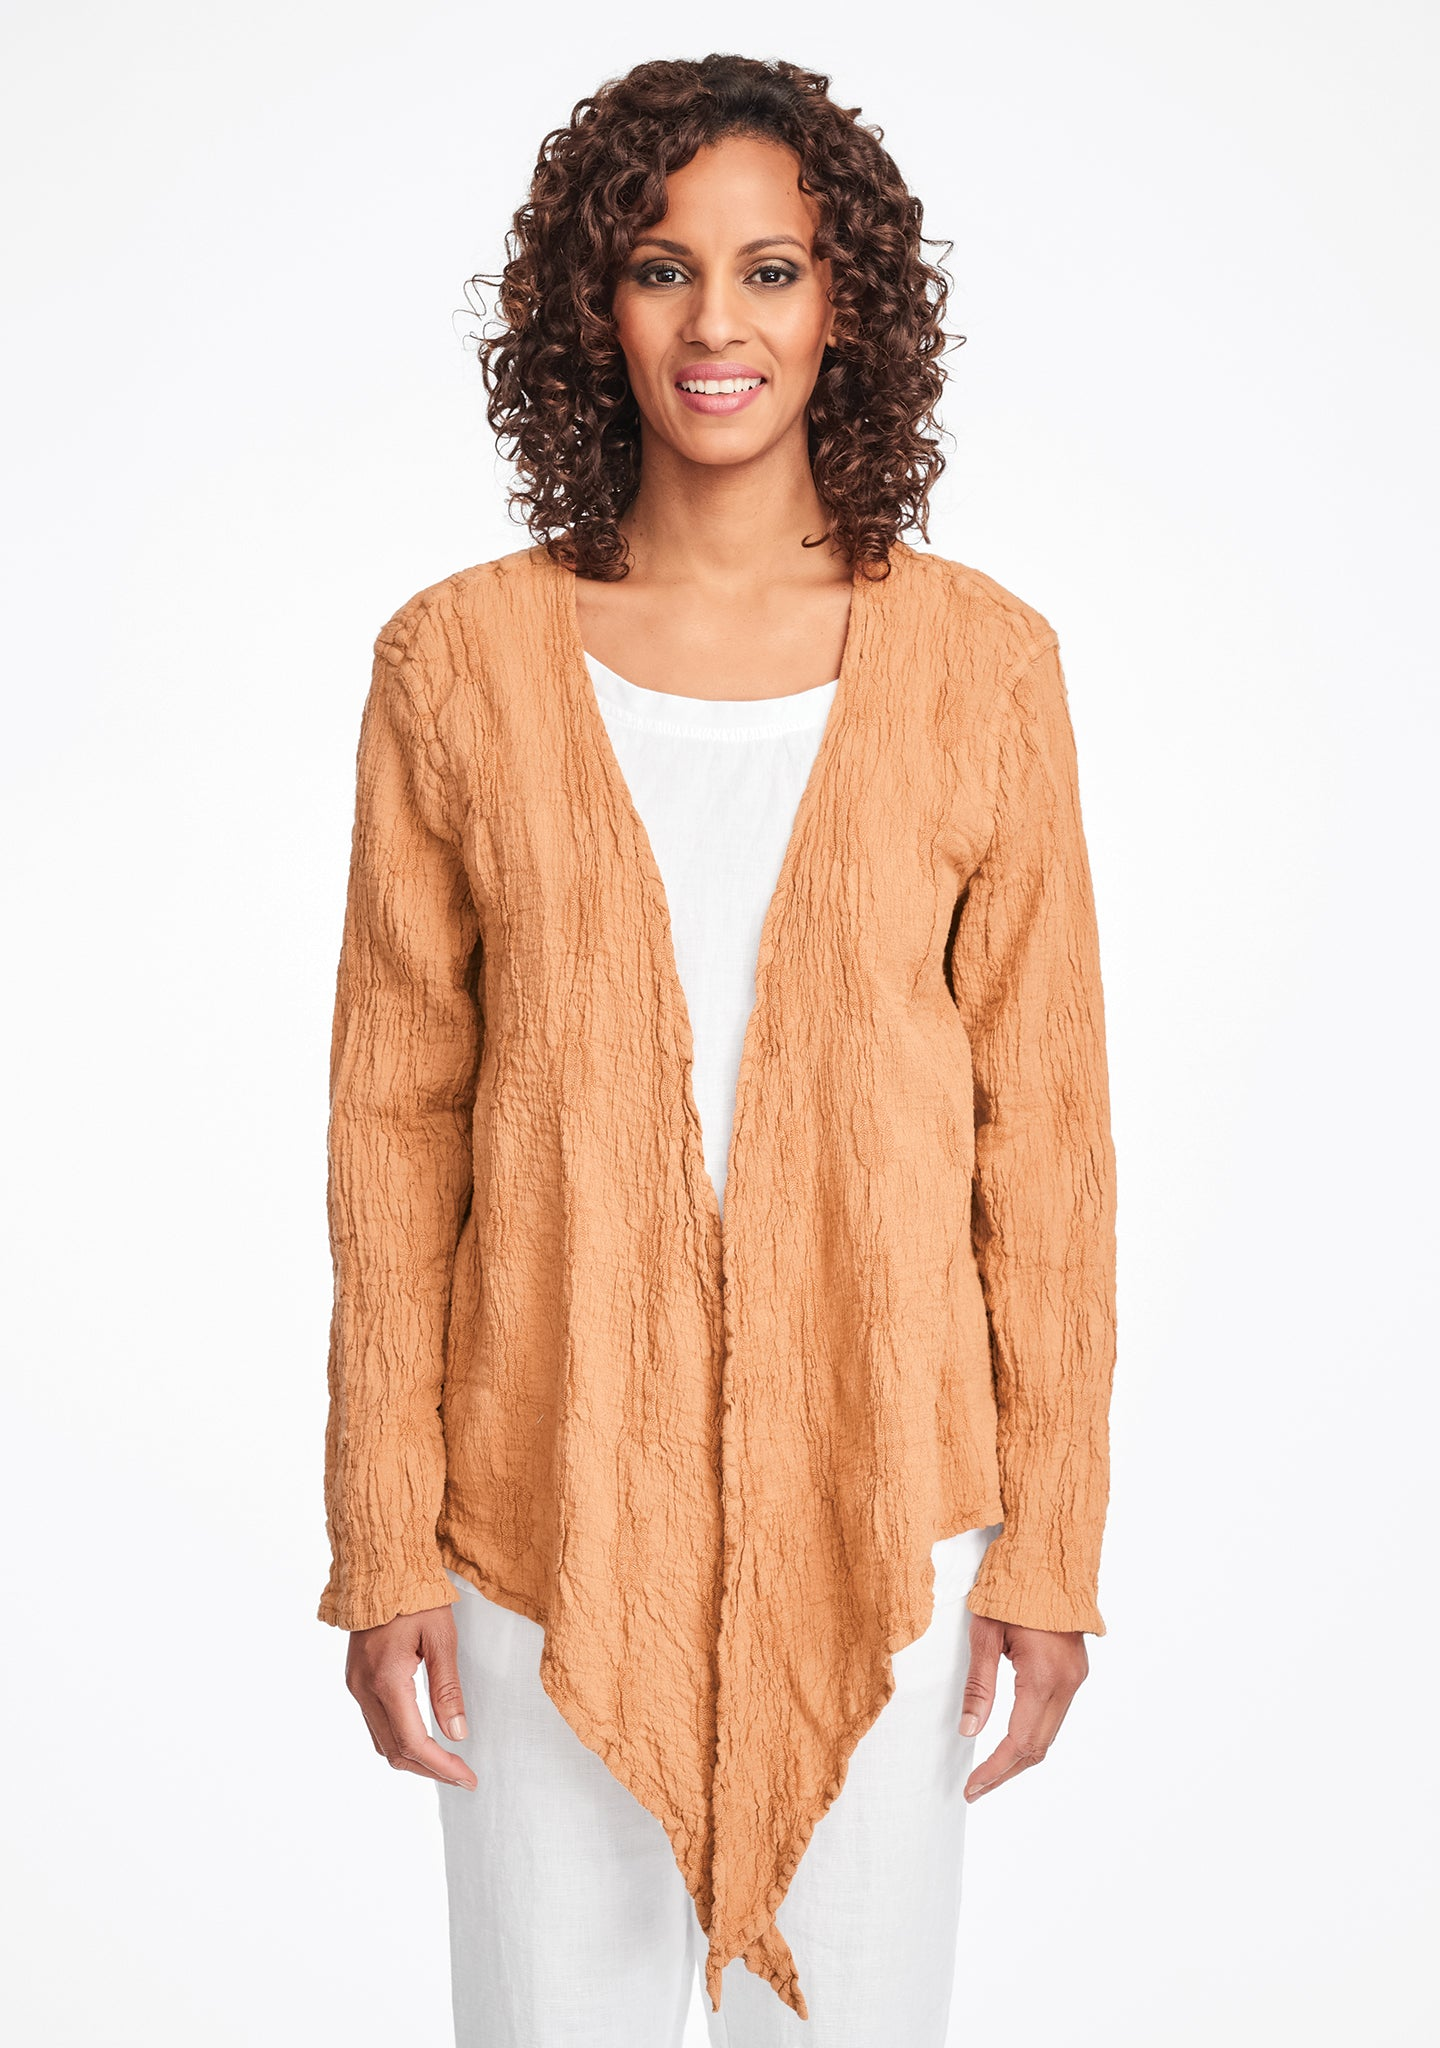 urban shrug linen cardigan orange